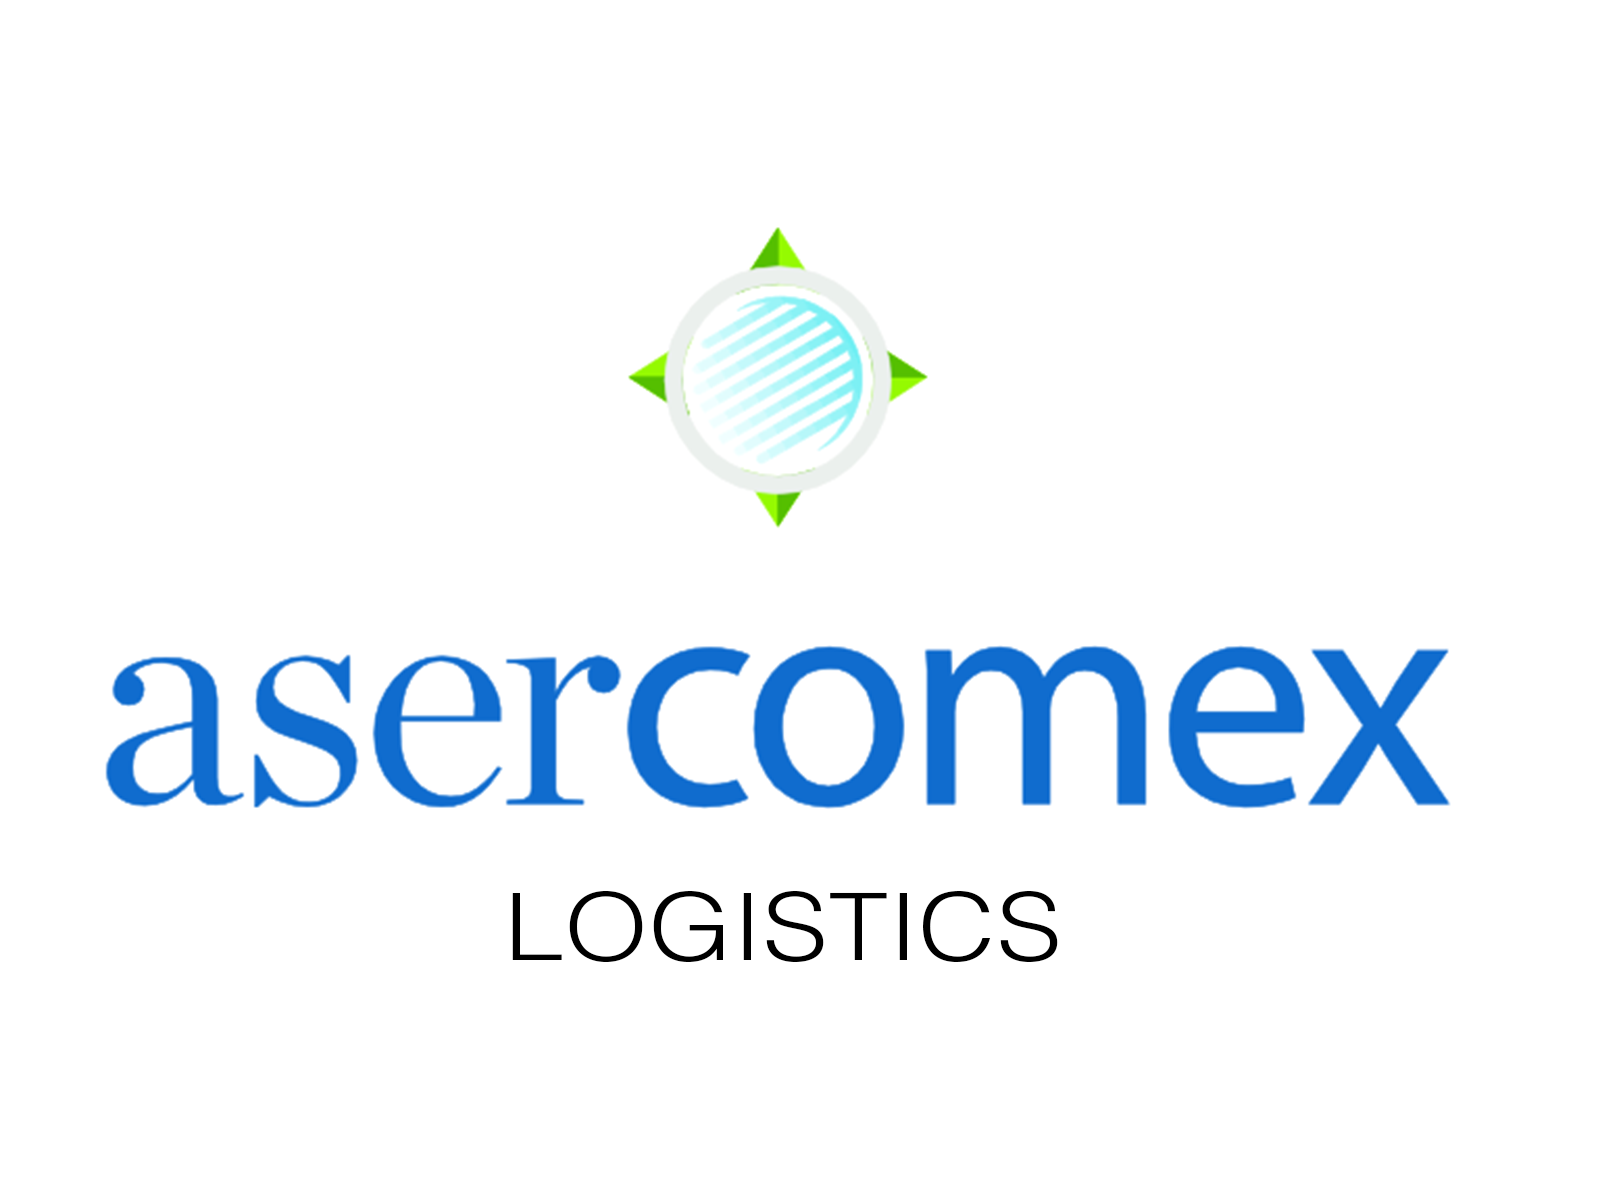 ASERCOMEX Logistics